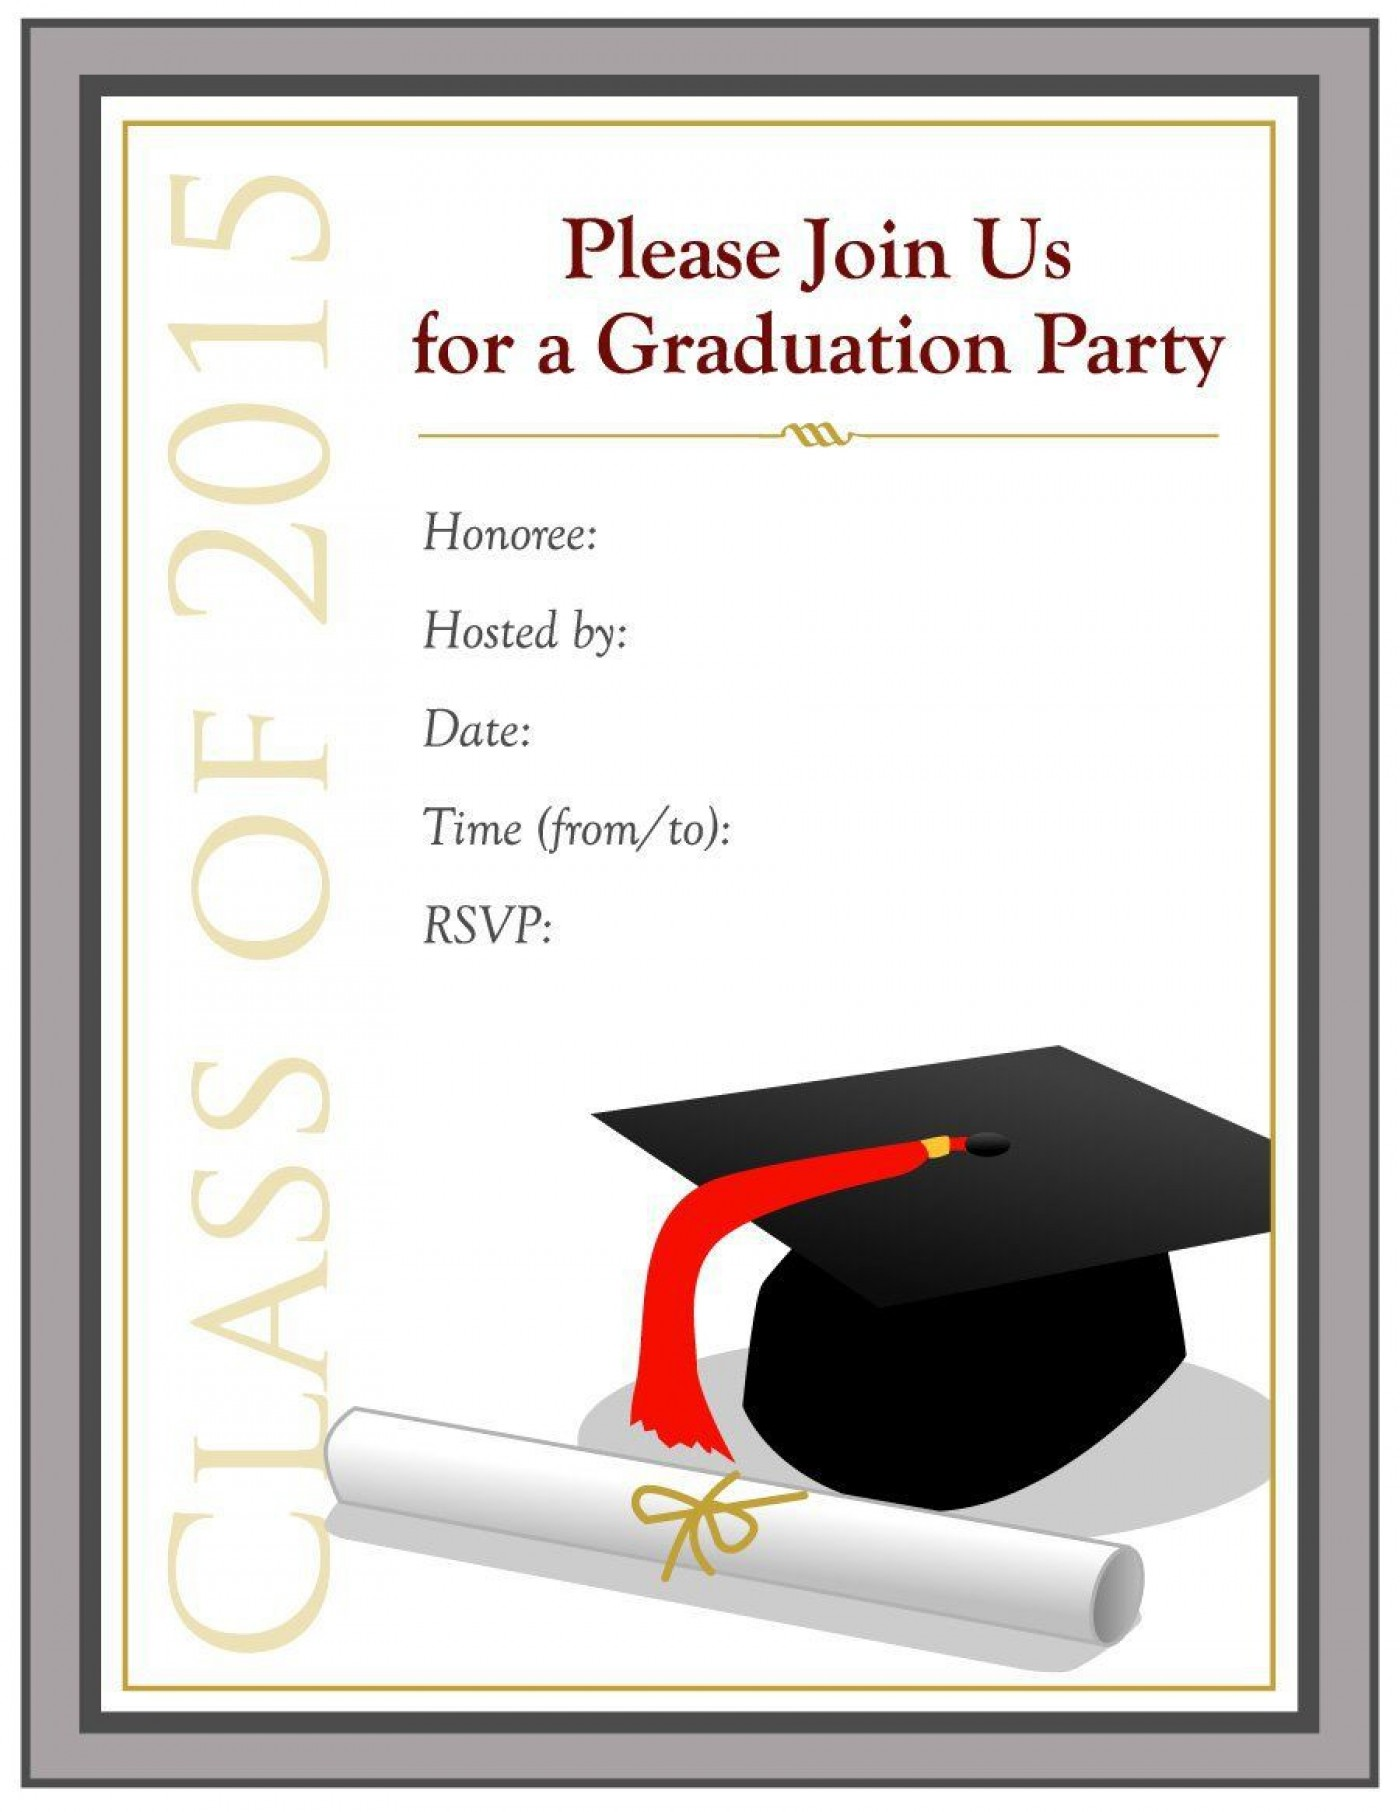 002 Remarkable Microsoft Word Graduation Party Invitation Template Design 1400